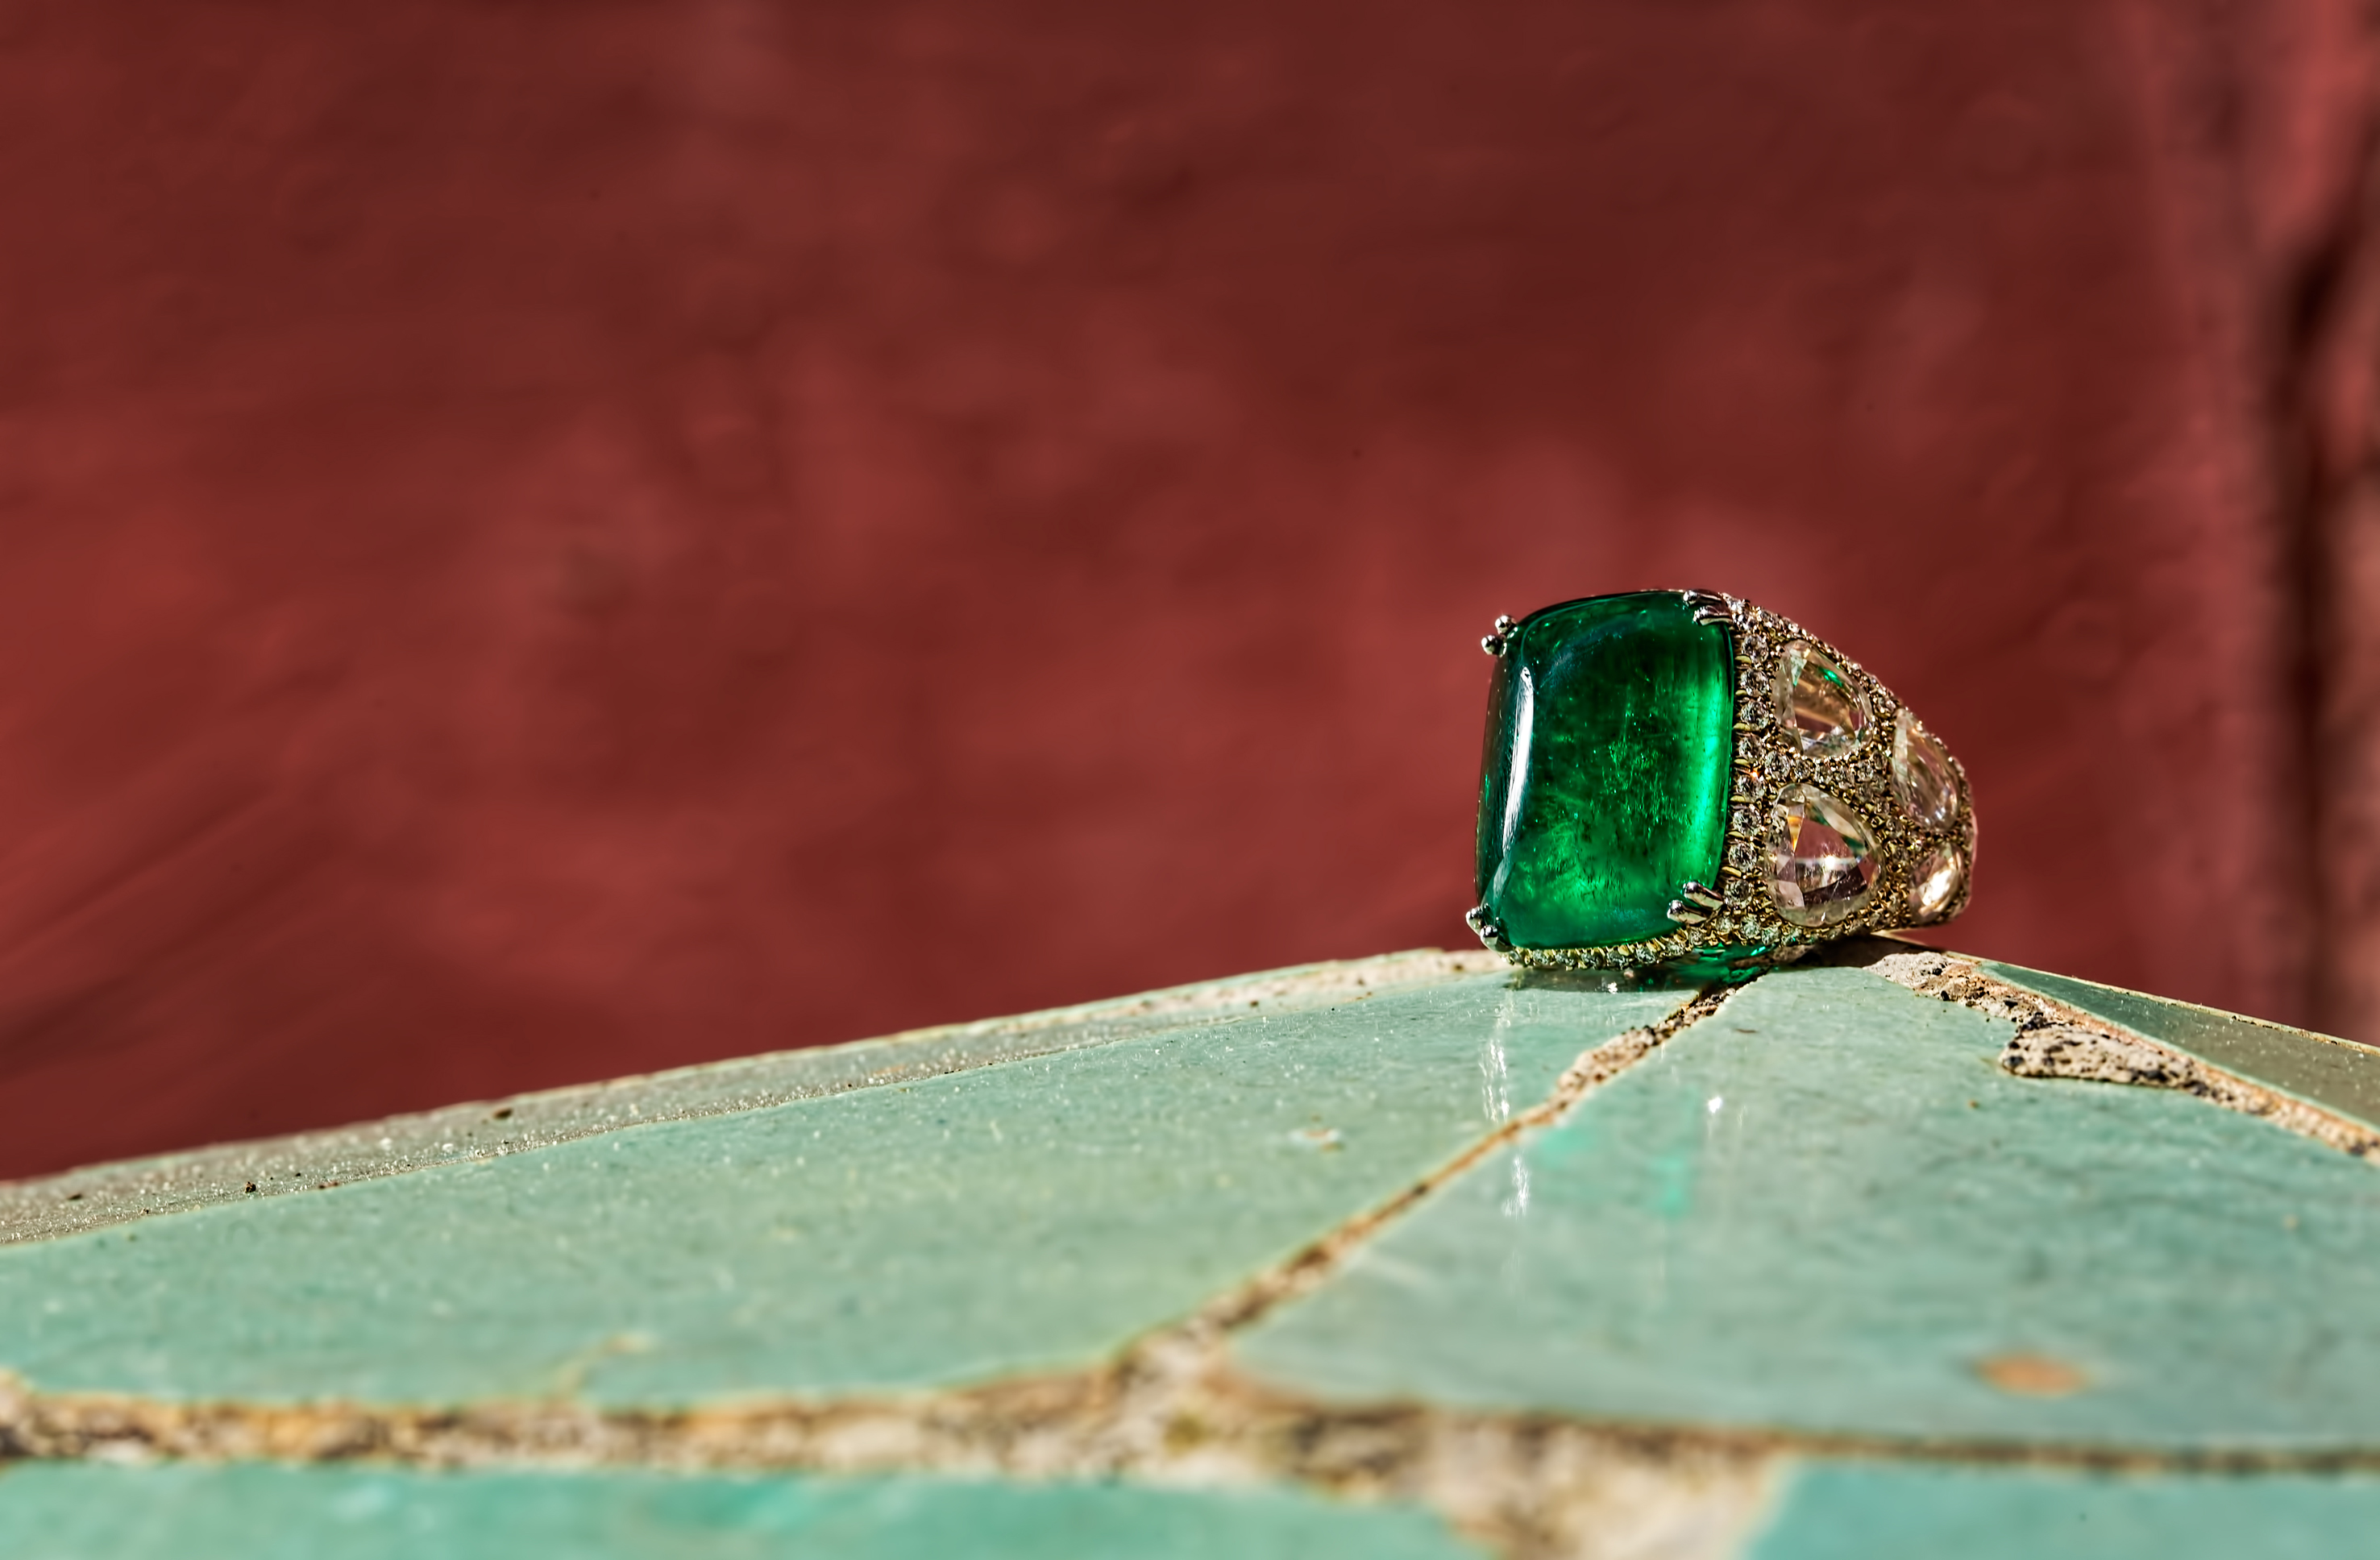 Chantecler High Jewellery's love affair with Capri's enchanting Nature and vivid colors